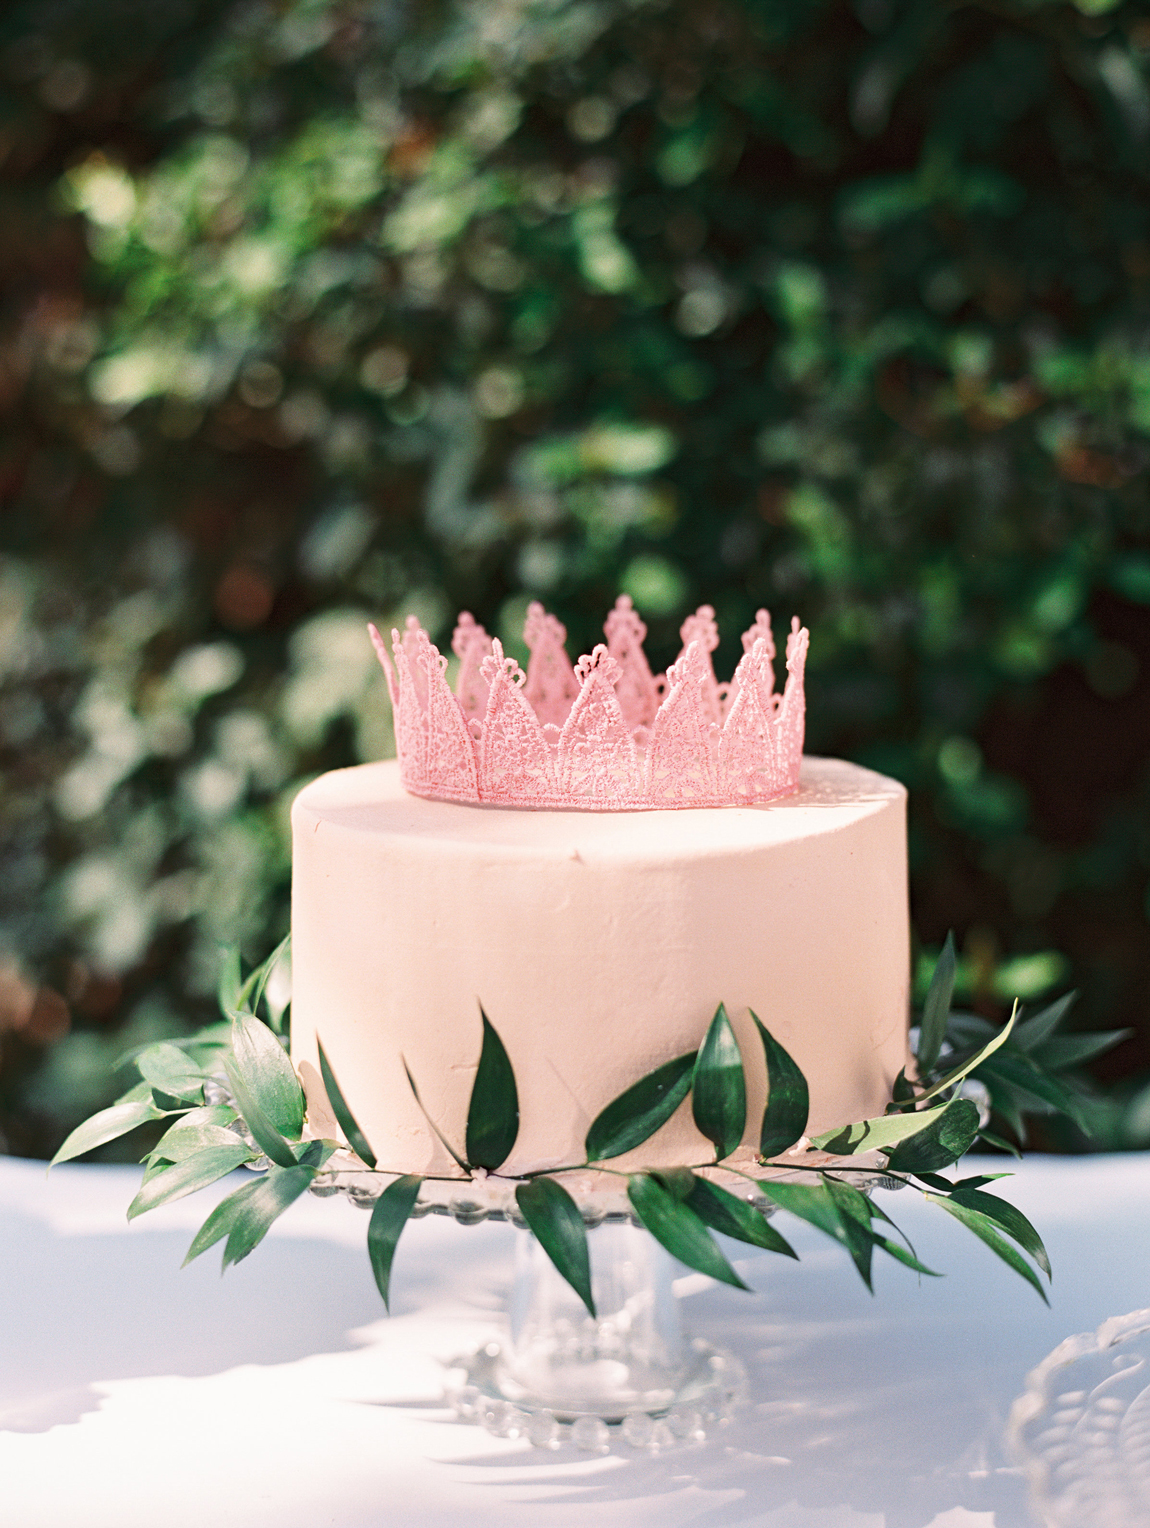 pink lace crown single layered pink frosted cake with greenery accent